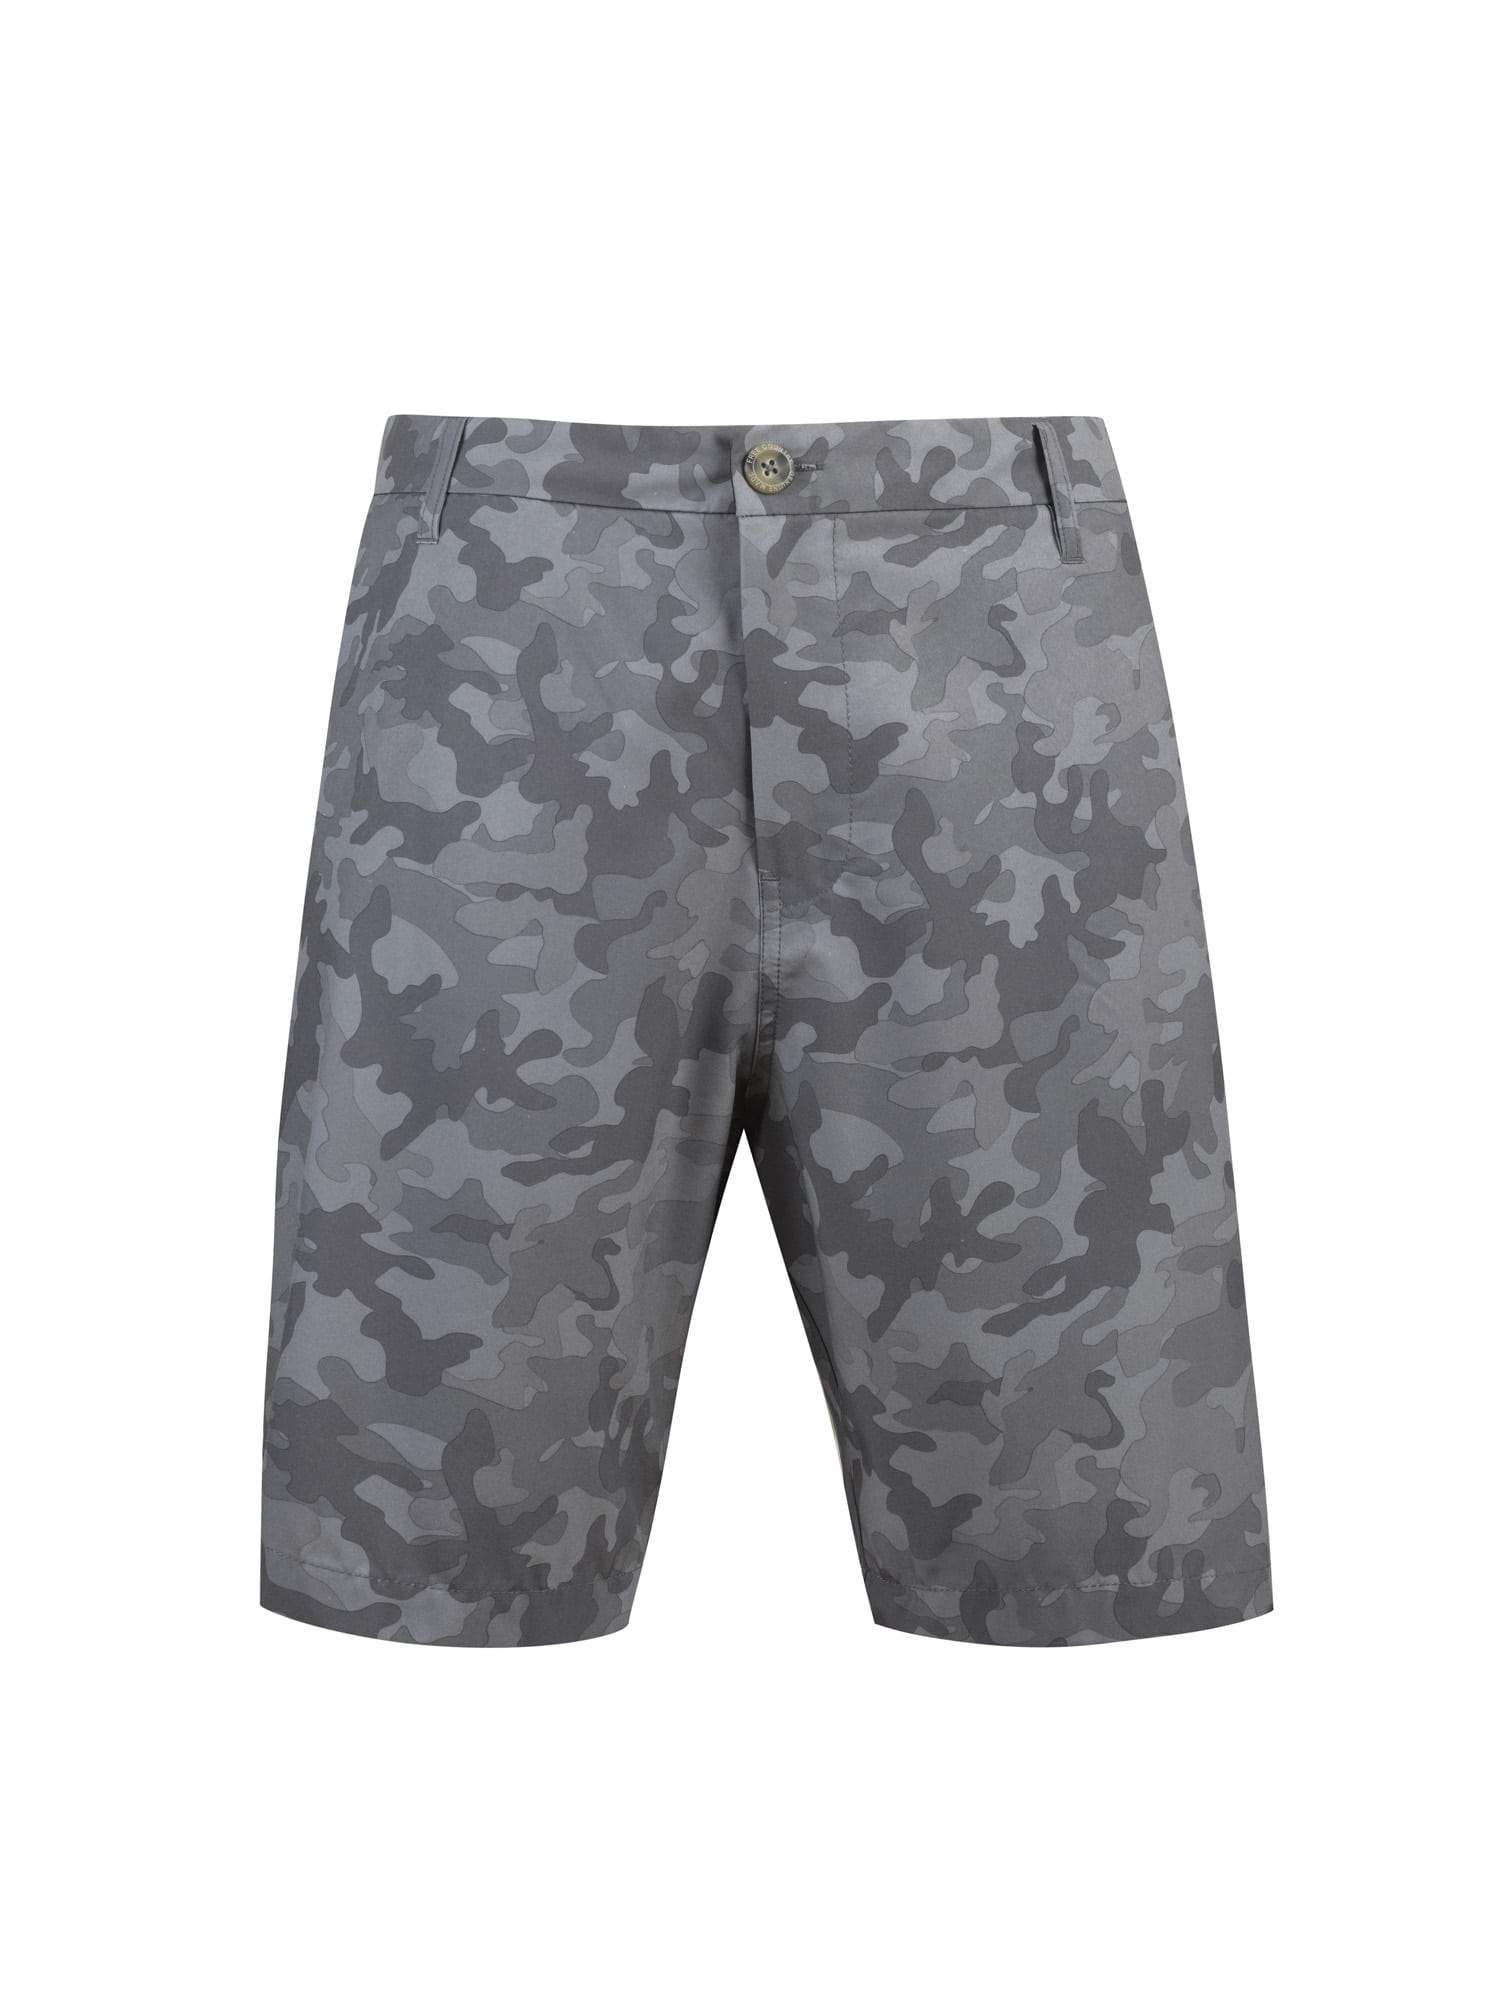 Free Country Men's Camo Board Shorts